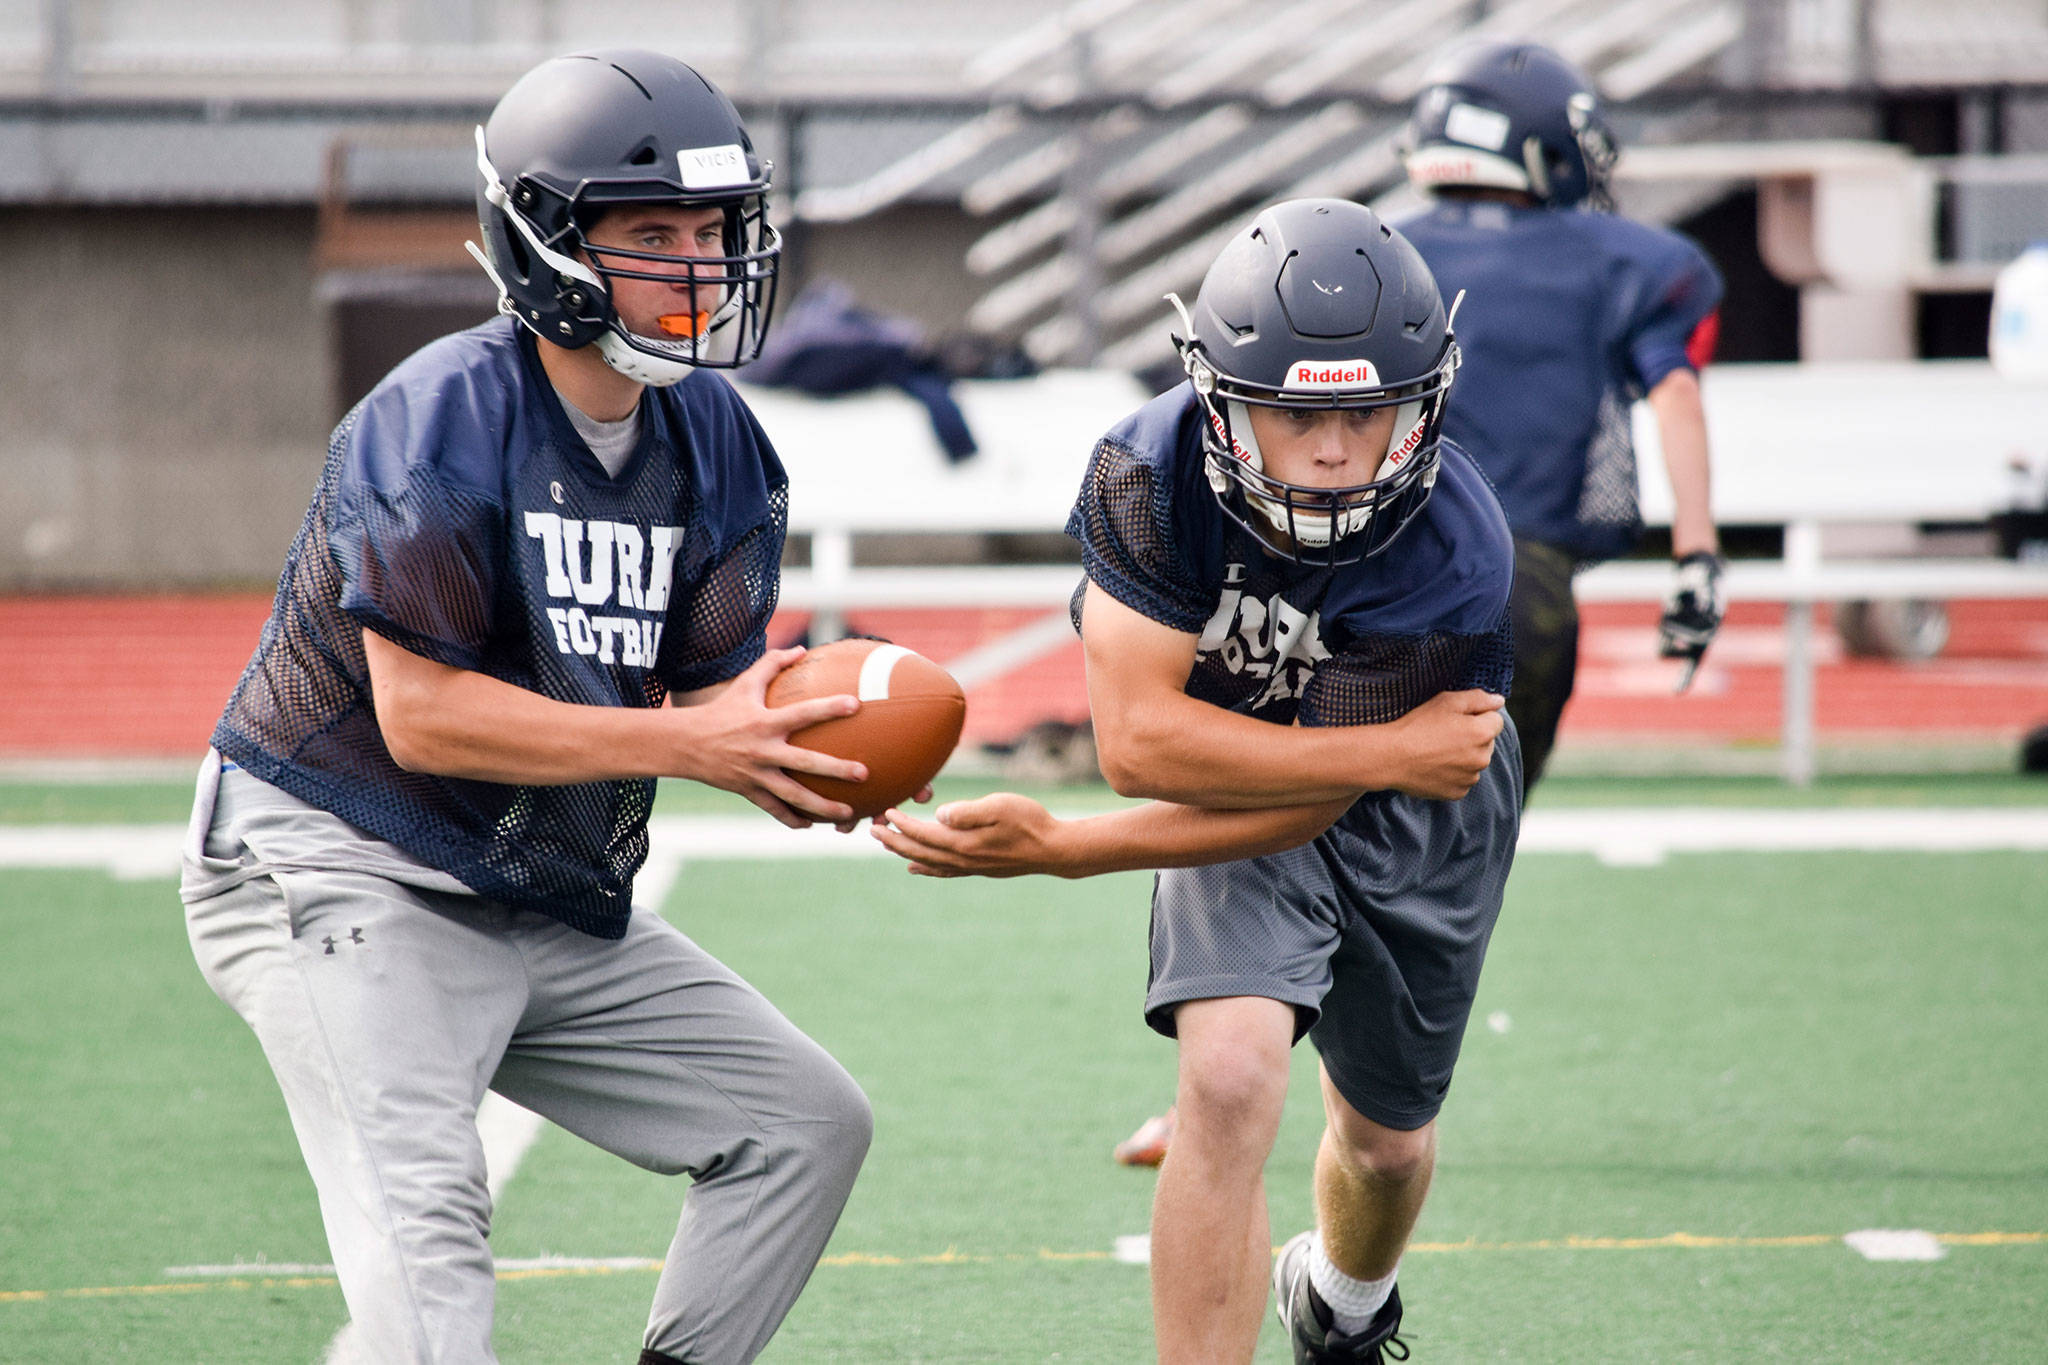 Sultan senior quarterback Willy Bennett fakes a hand-off to senior running back Aidan Fleming during practice on Aug. 23, 2019, at Sultan High School. (Katie Webber / The Herald)